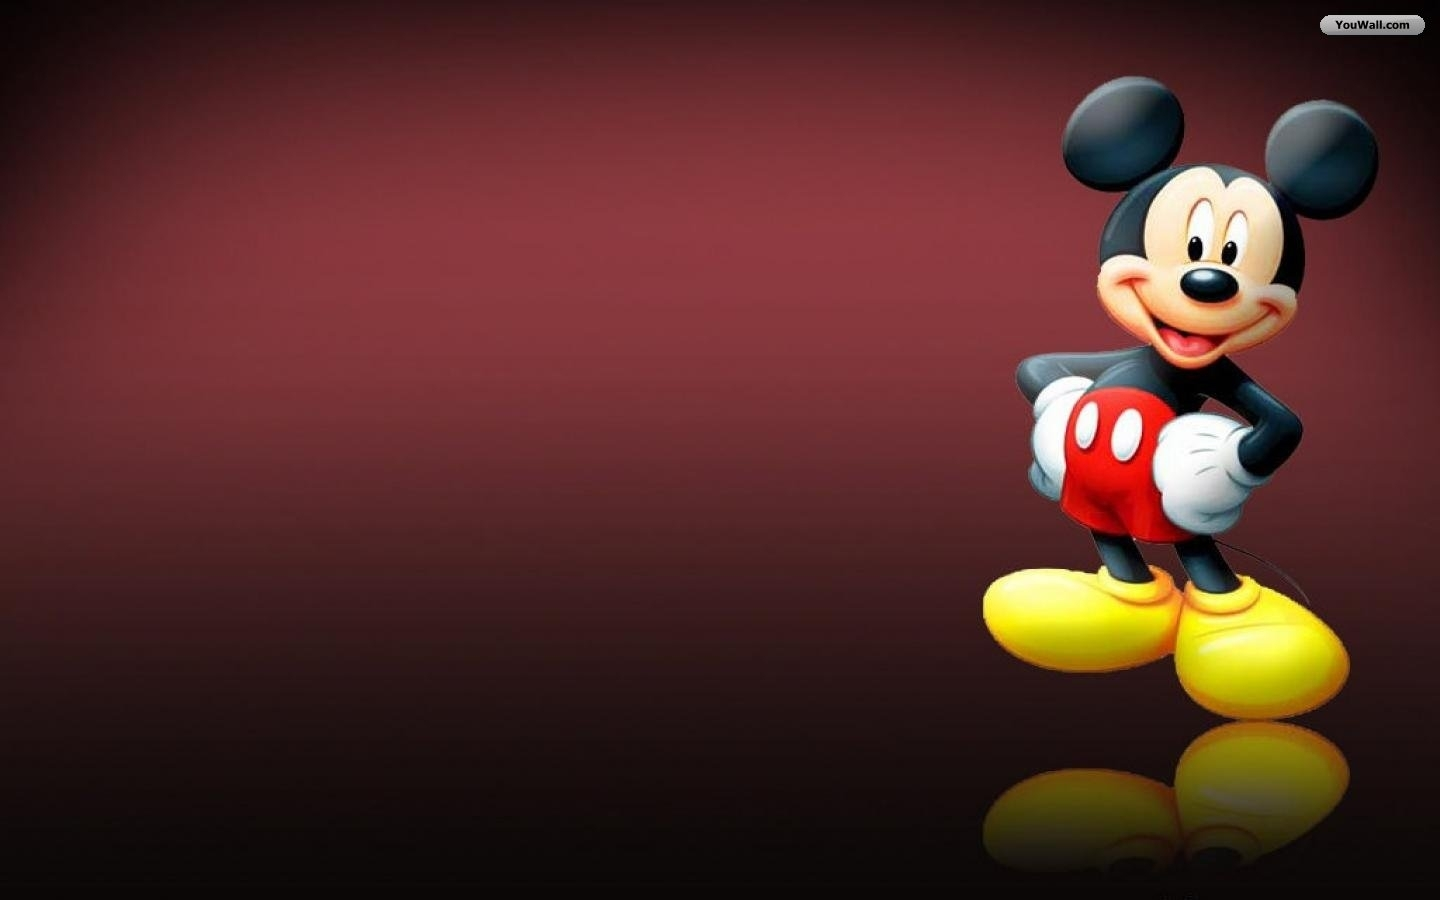 mickey mouse smiling wallpaper - baltana